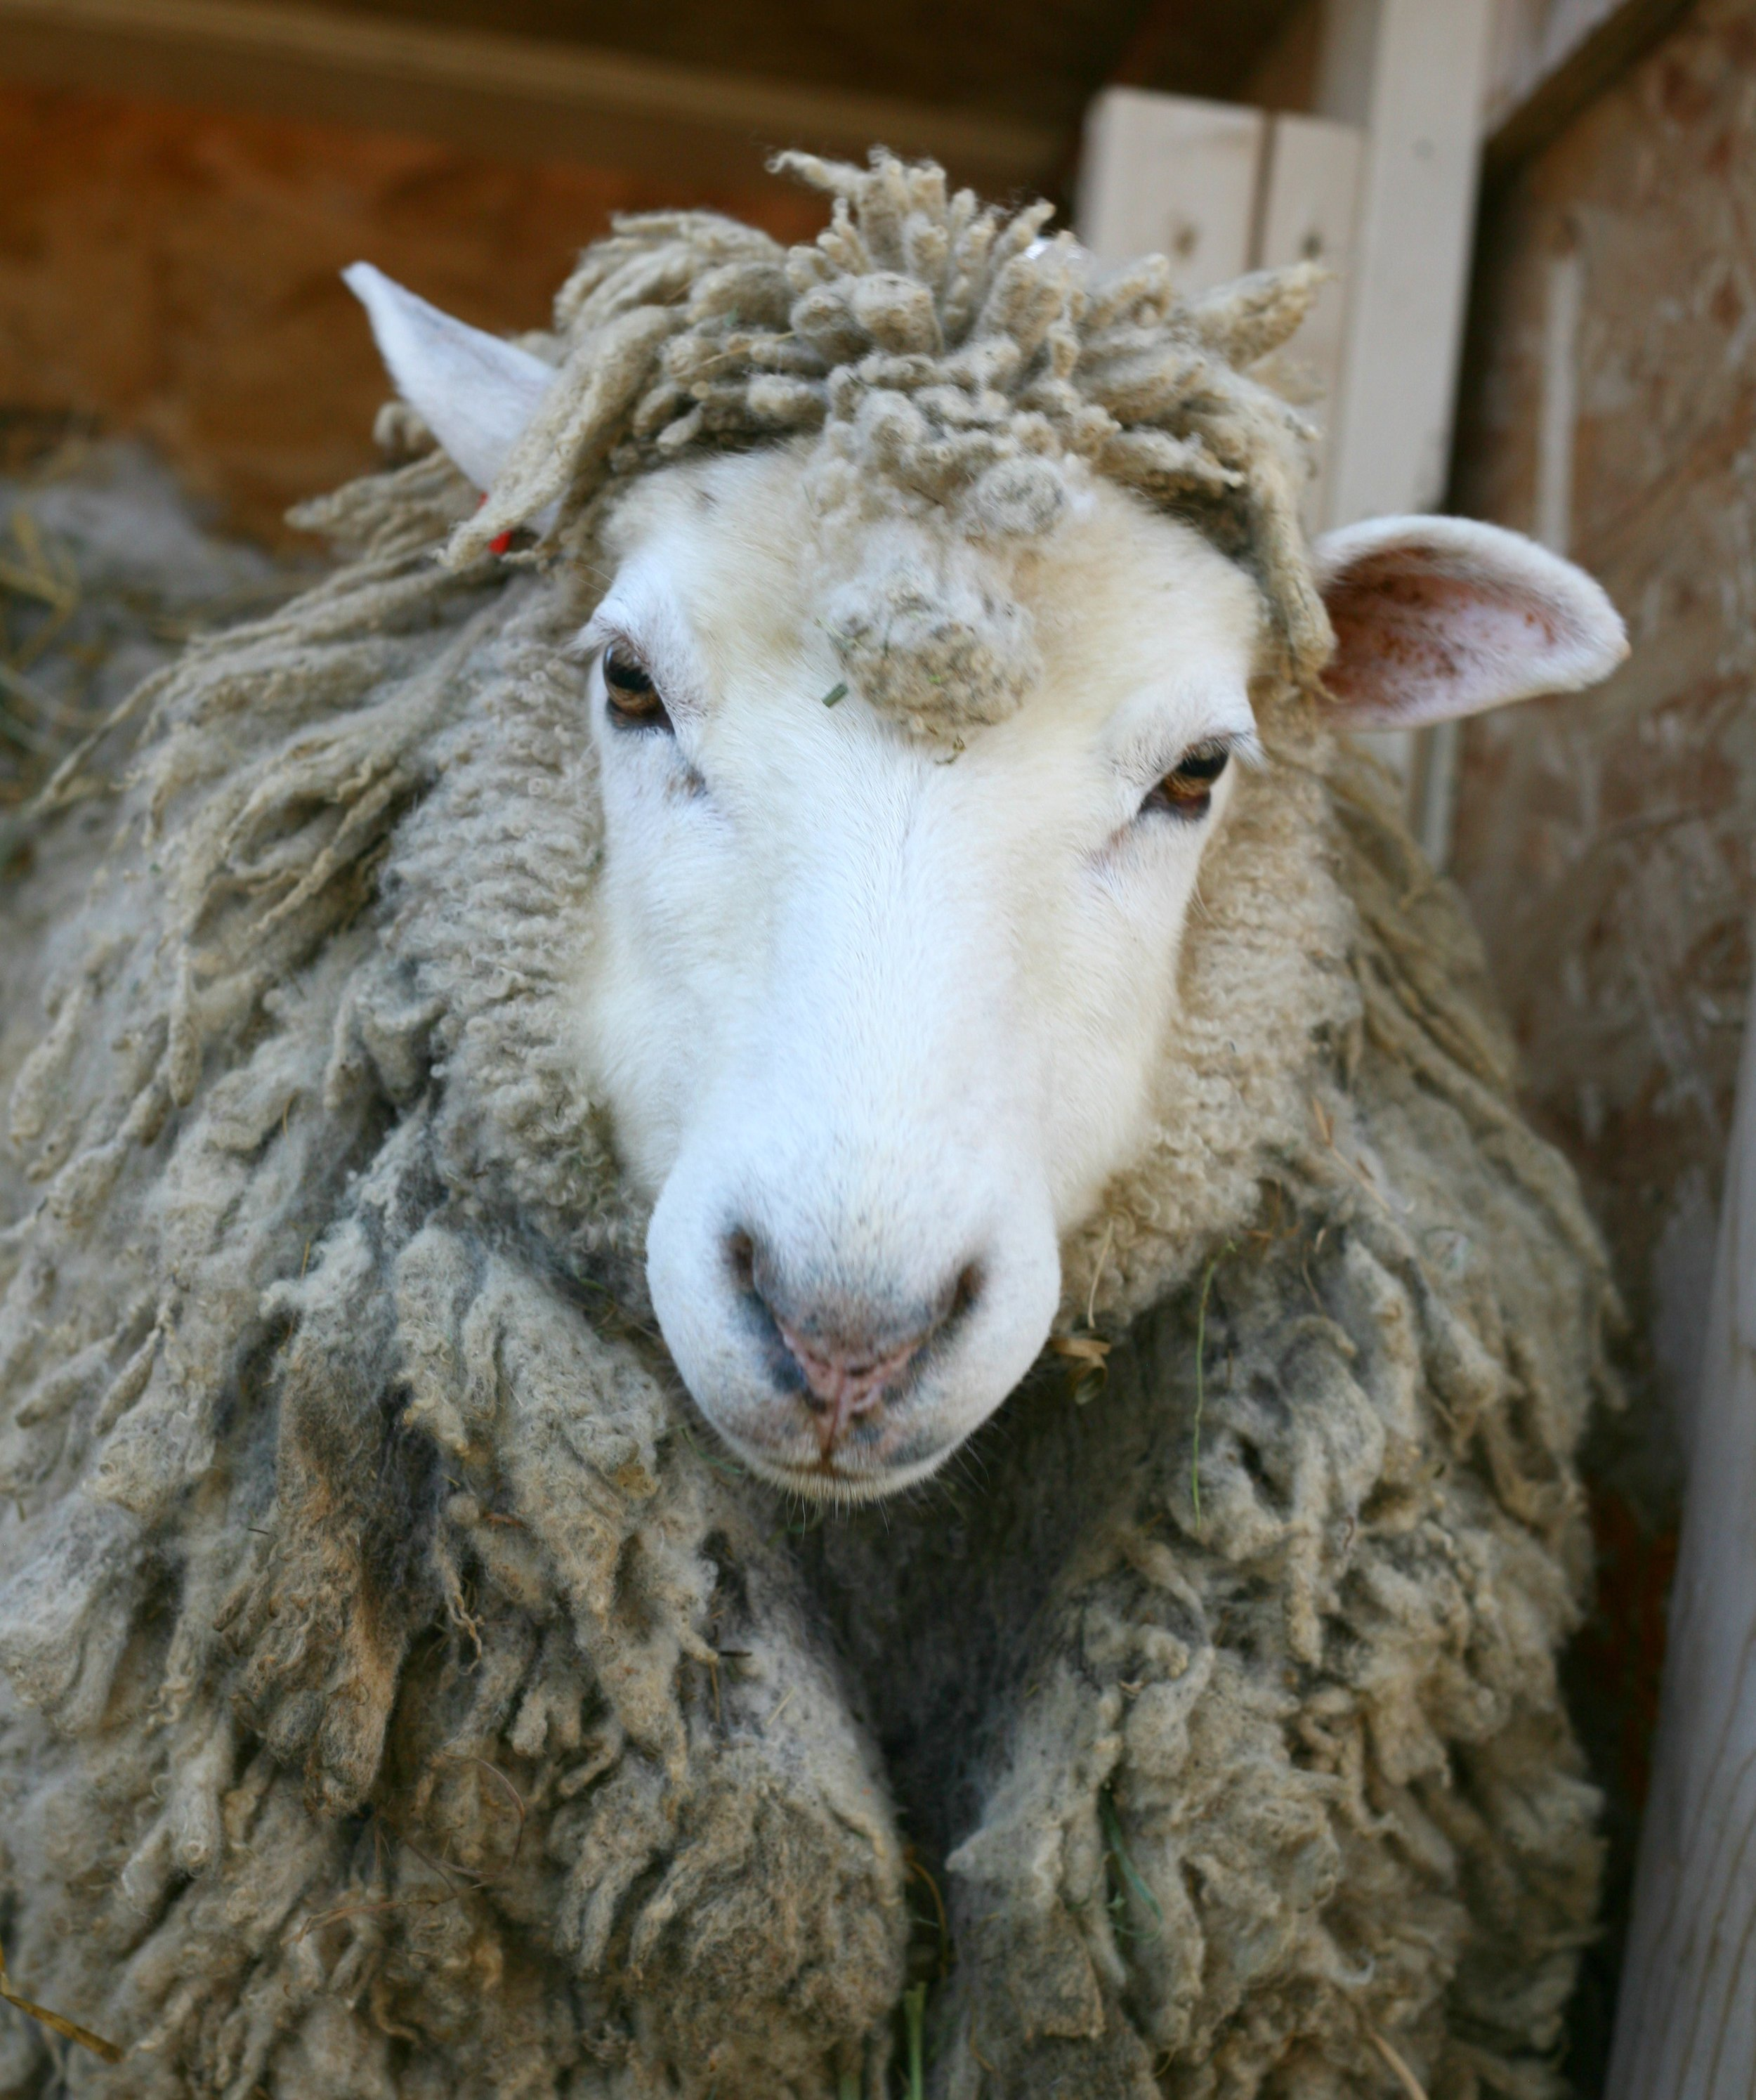 She is 4 years old merino/Cotswold cross. She is the silent strong type. She is gentle, yet let's me know that she likes her space!  She has a beautiful fine fleece.